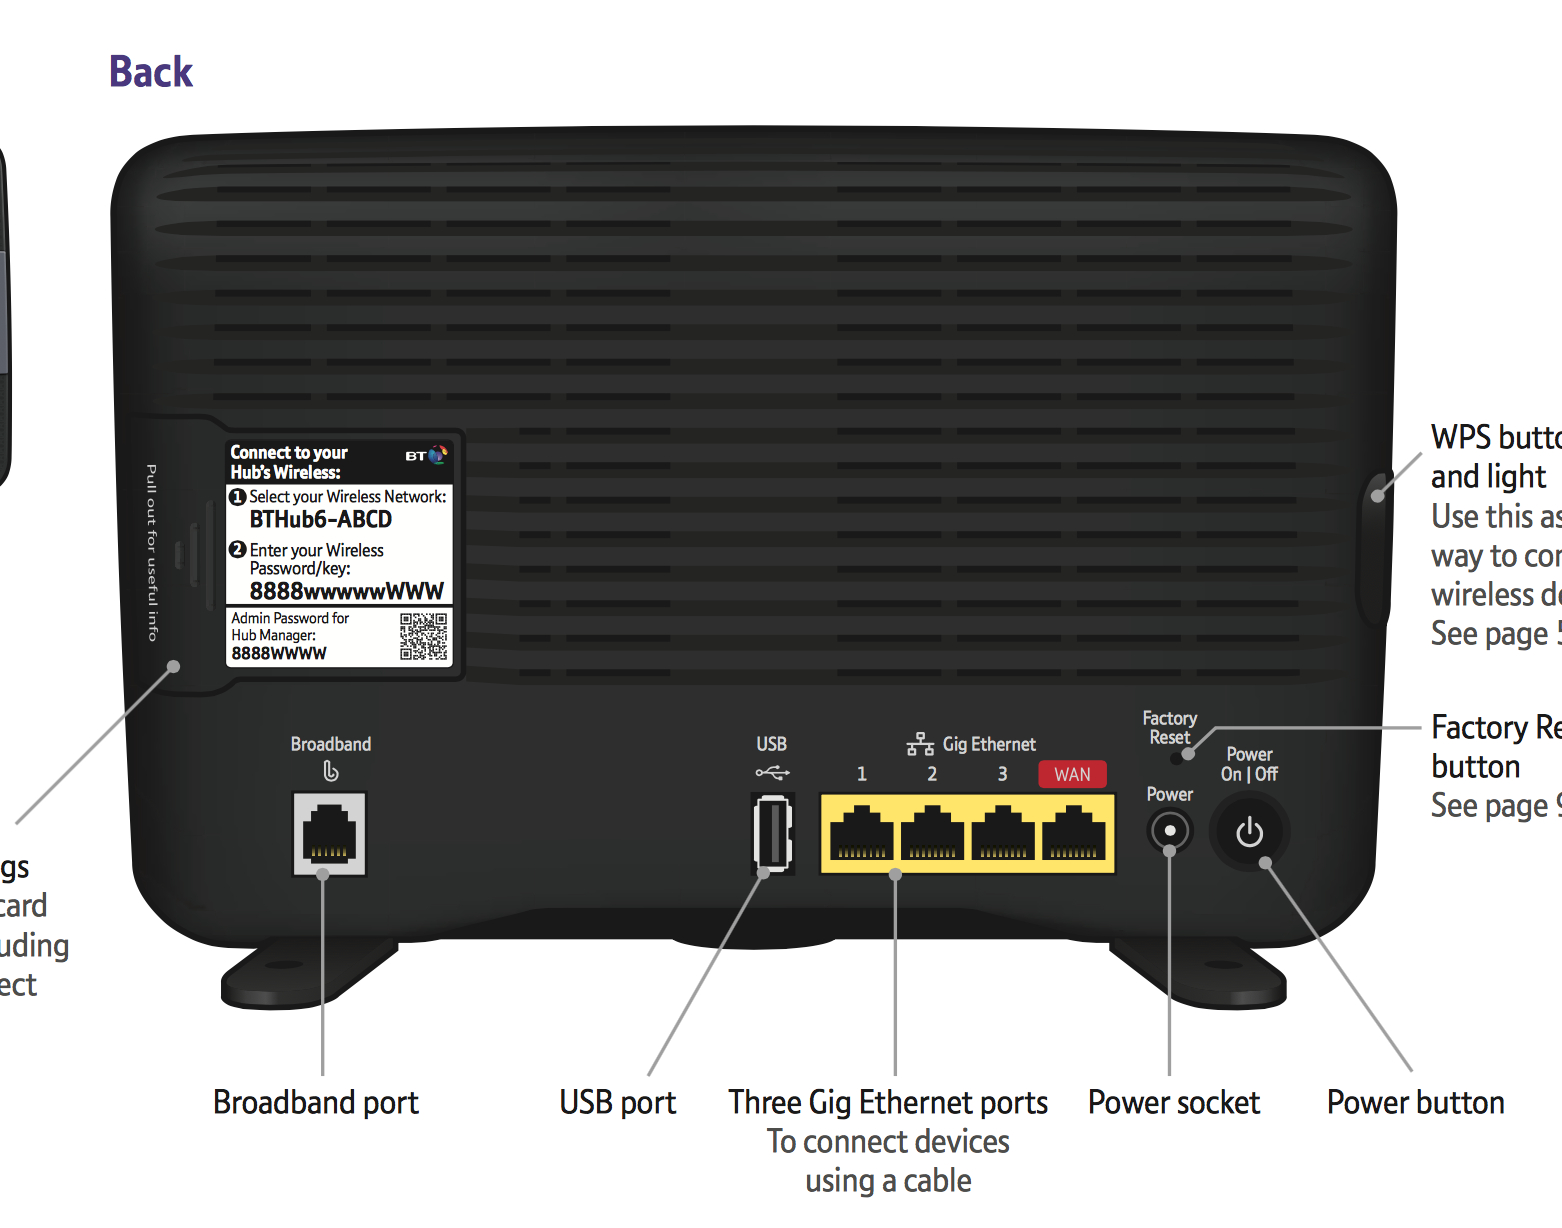 solved fiber to home smart hub how to connect bt communityscreen shot 2017 02 21 at 09 03 25 png